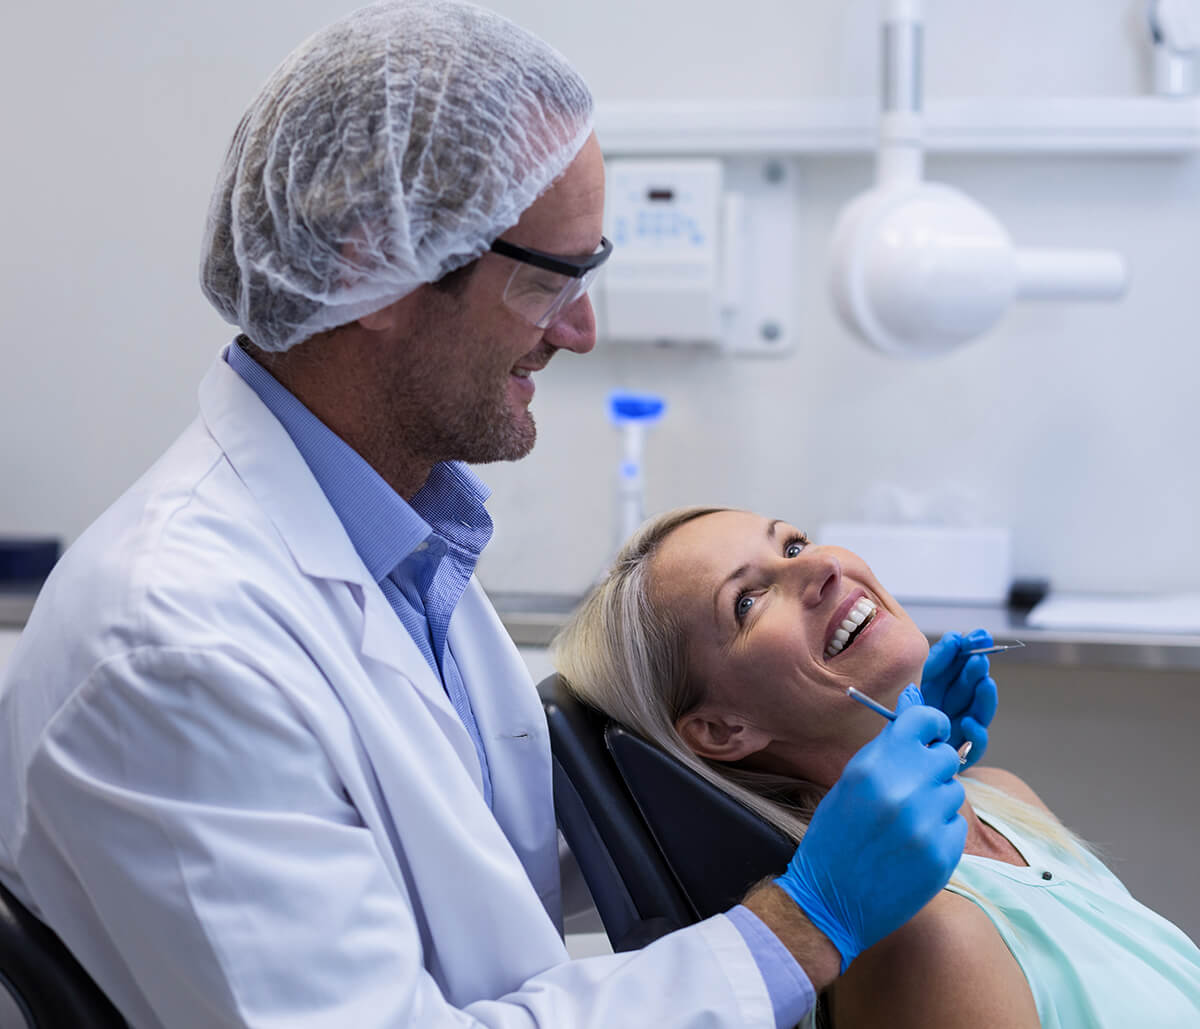 Sedation Dentistry Services for Overcome Dental Fear and Anxiety Patients in Quincy Ma Area